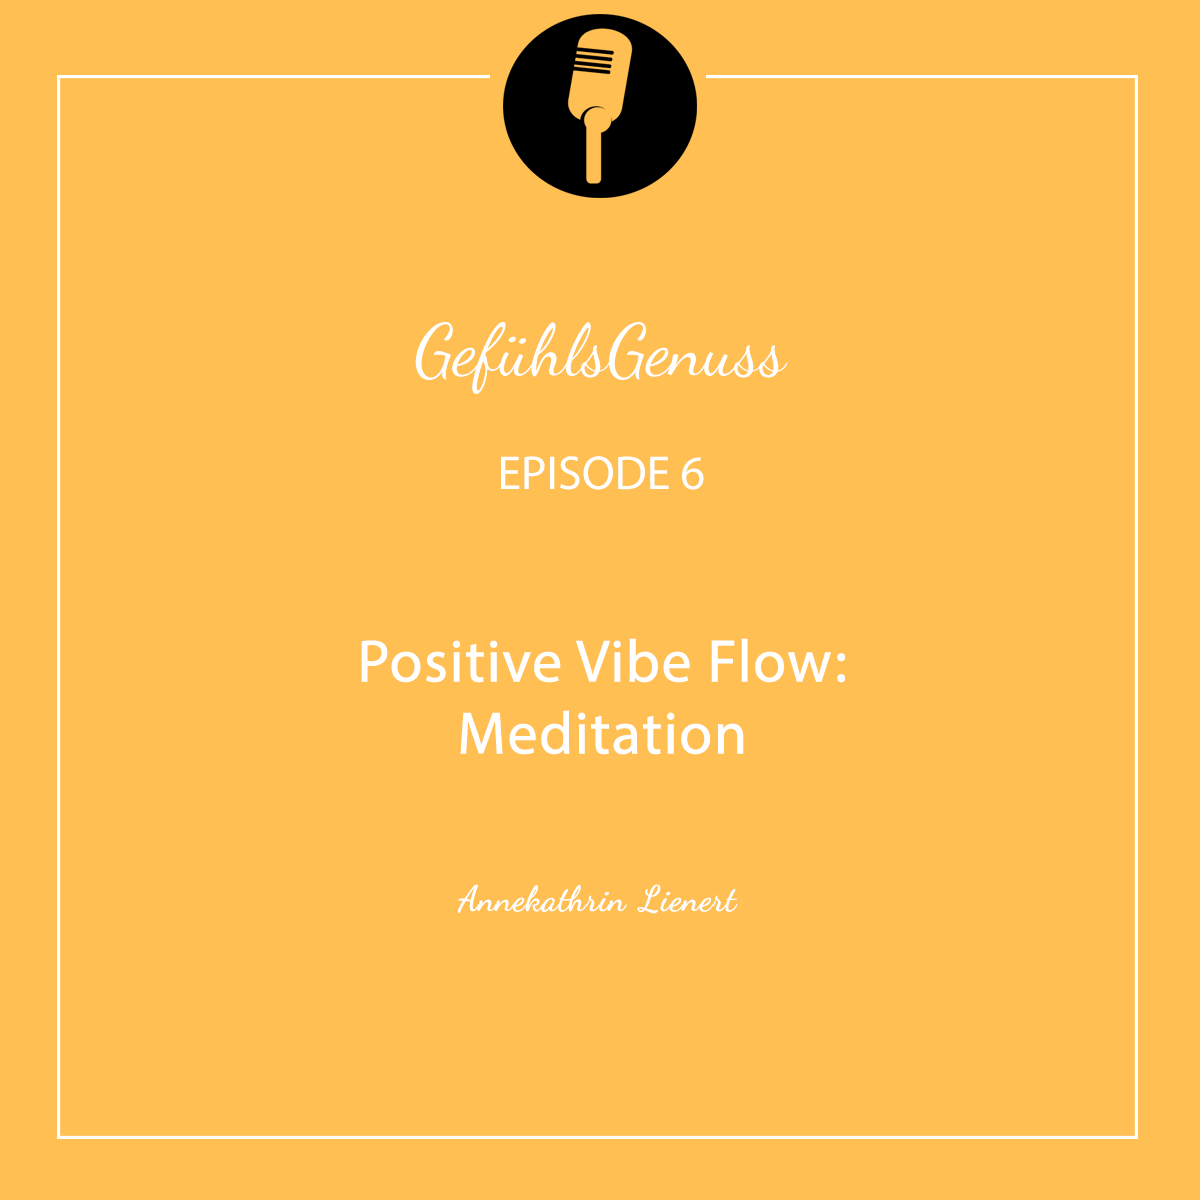 Episode 6 – Positive Vibe Flow: Meditation